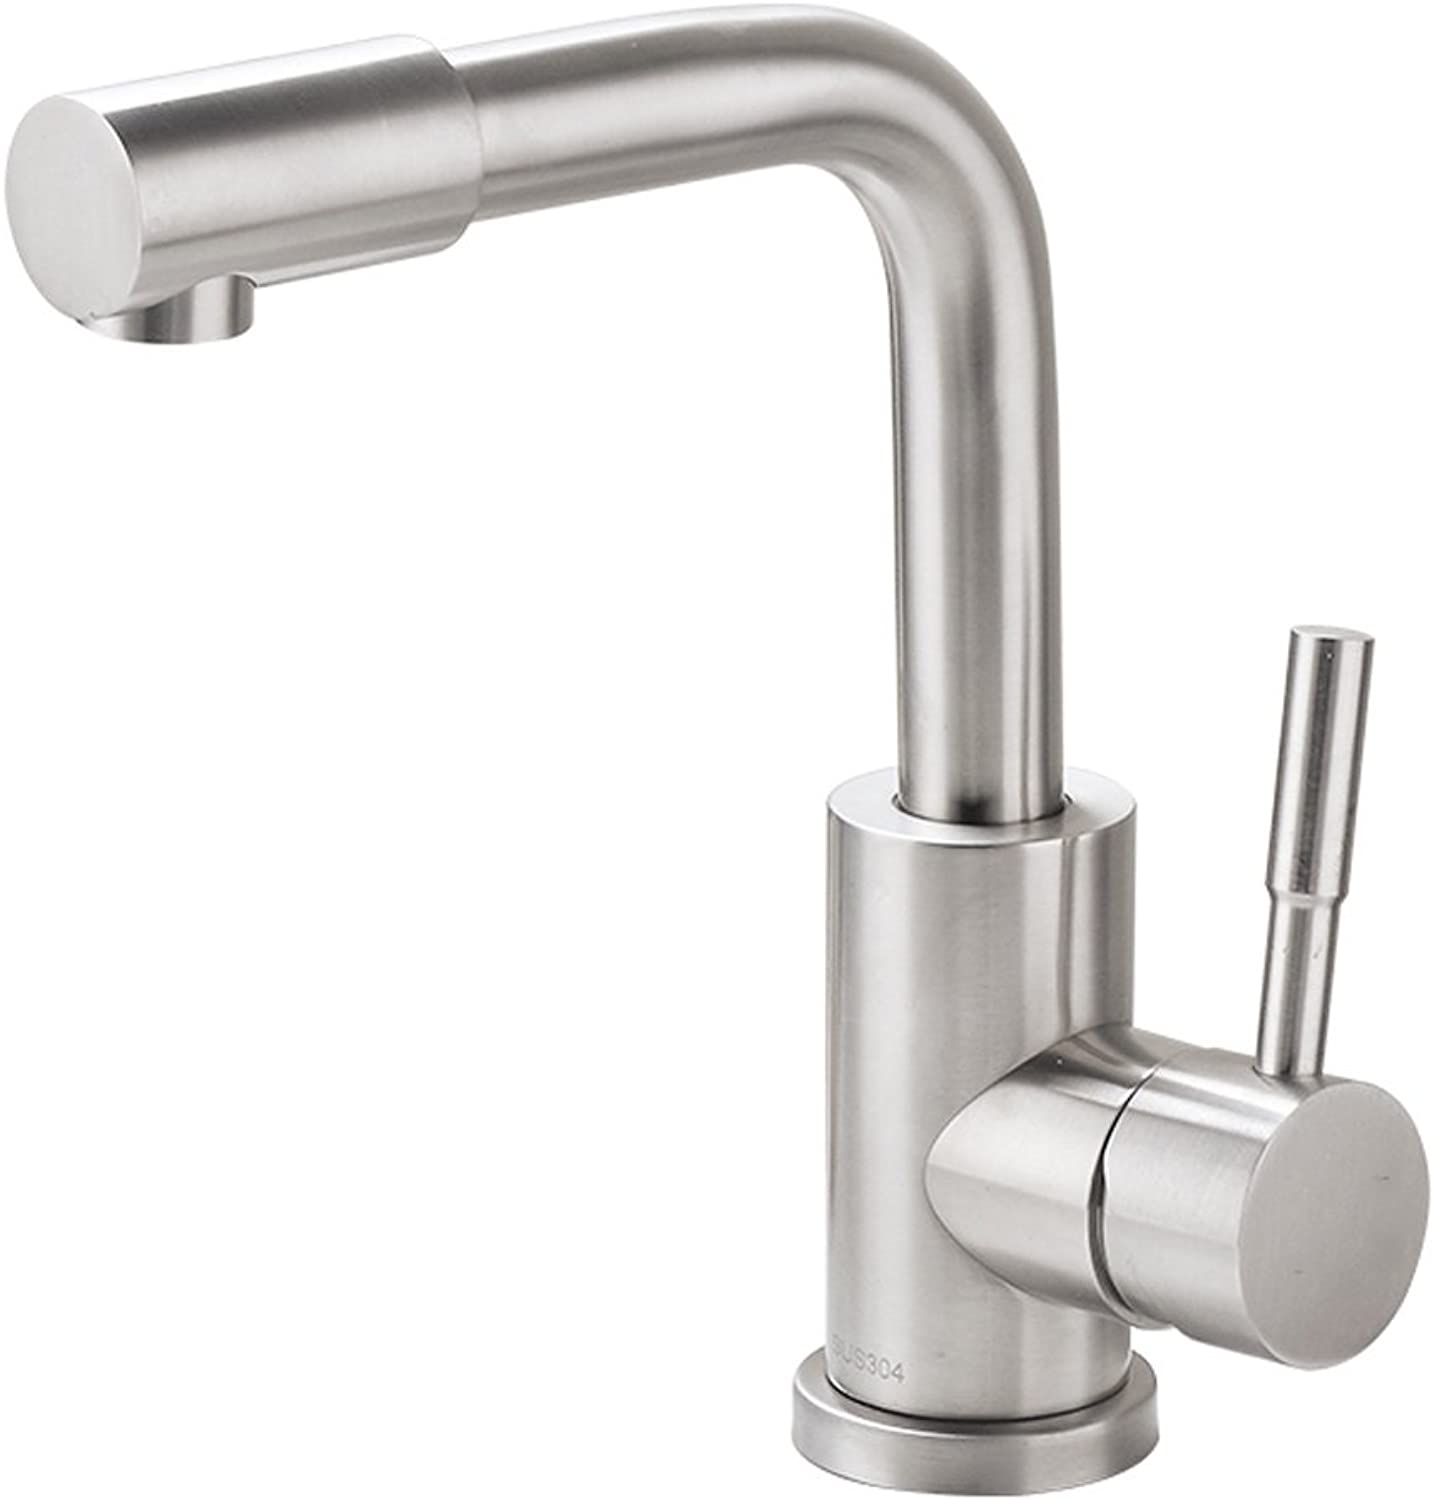 Faucet 304 Stainless Steel redating Hot And Cold Single Hole Kitchen Bathroom Aperture 32mm To 40mm MUMUJIN